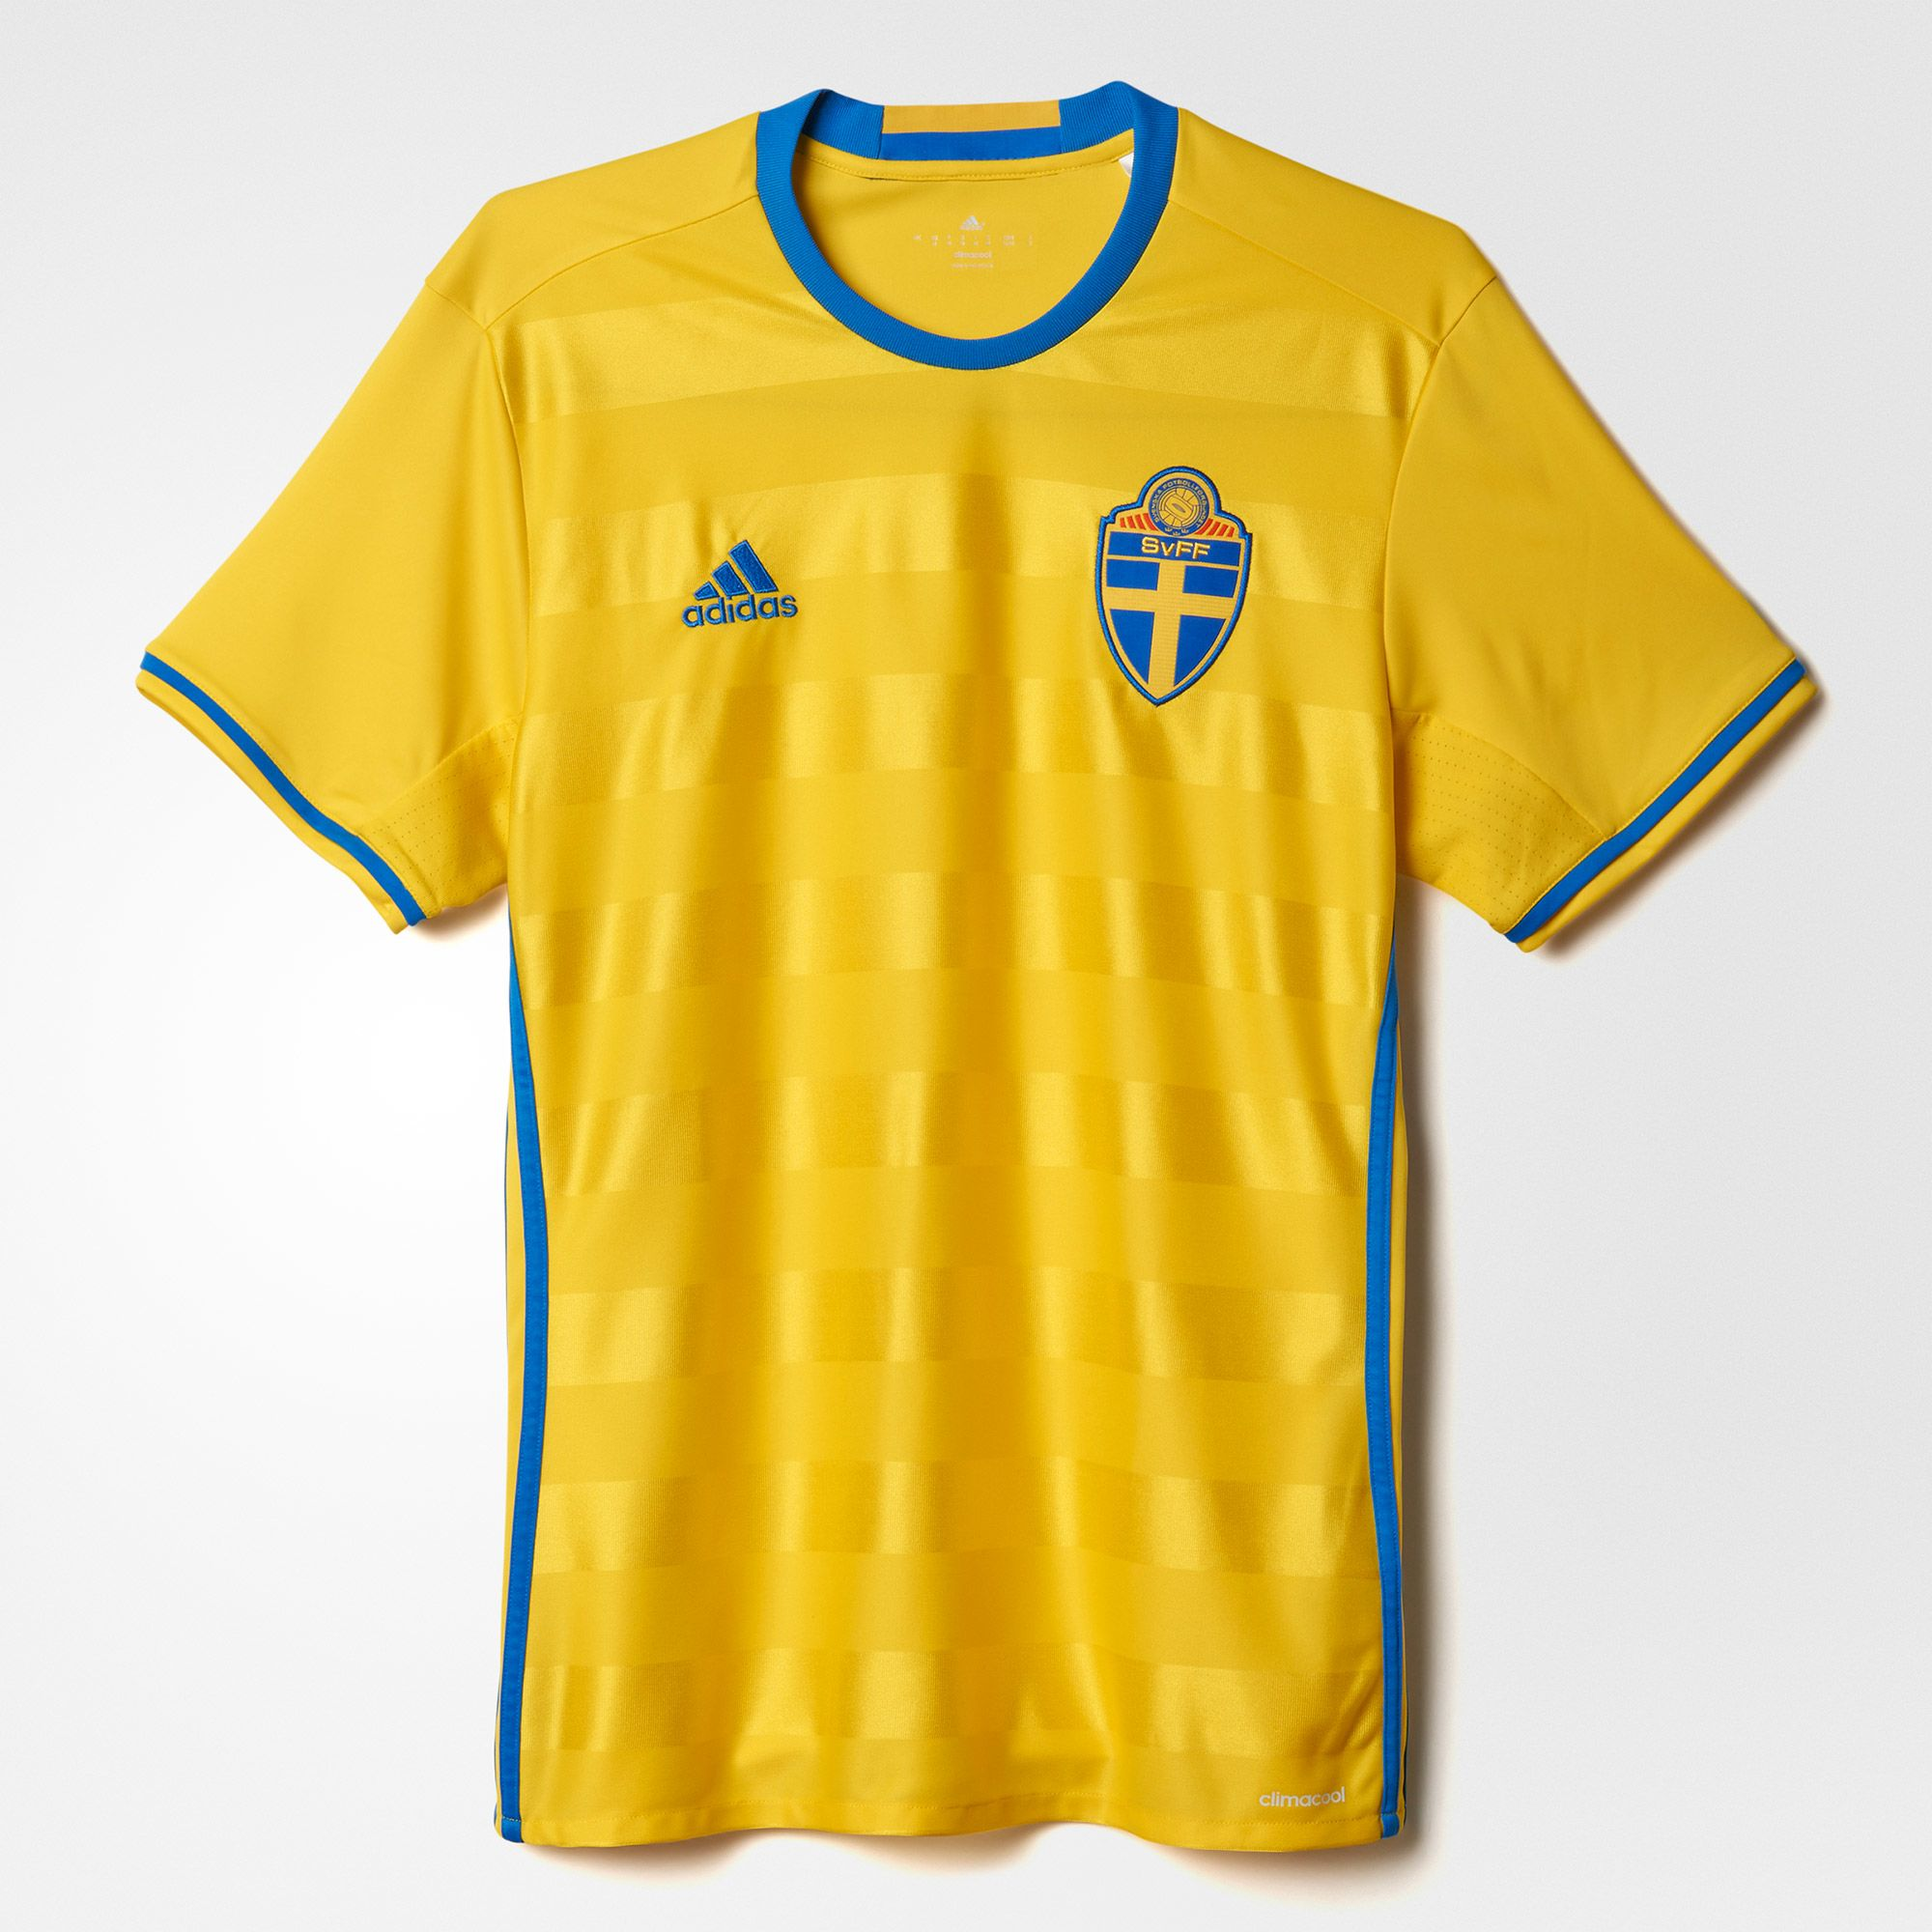 adidas Sweden Home Jersey 2015/16 - Yellow/Royal